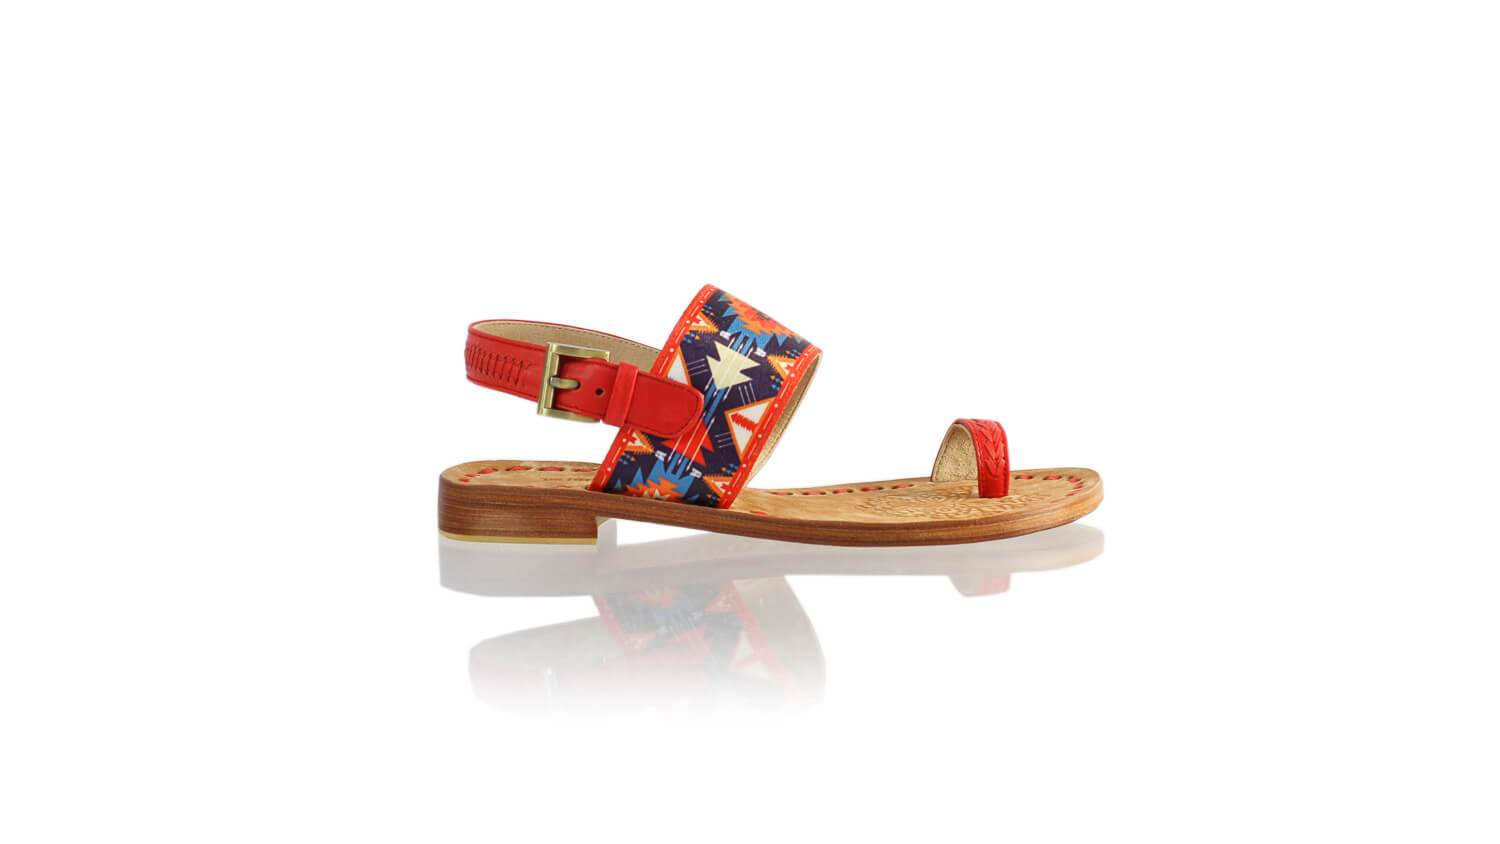 Leather-shoes-Prana 20mm Flat - Red & Red Navy Blue Ribbon-sandals flat-NILUH DJELANTIK-NILUH DJELANTIK